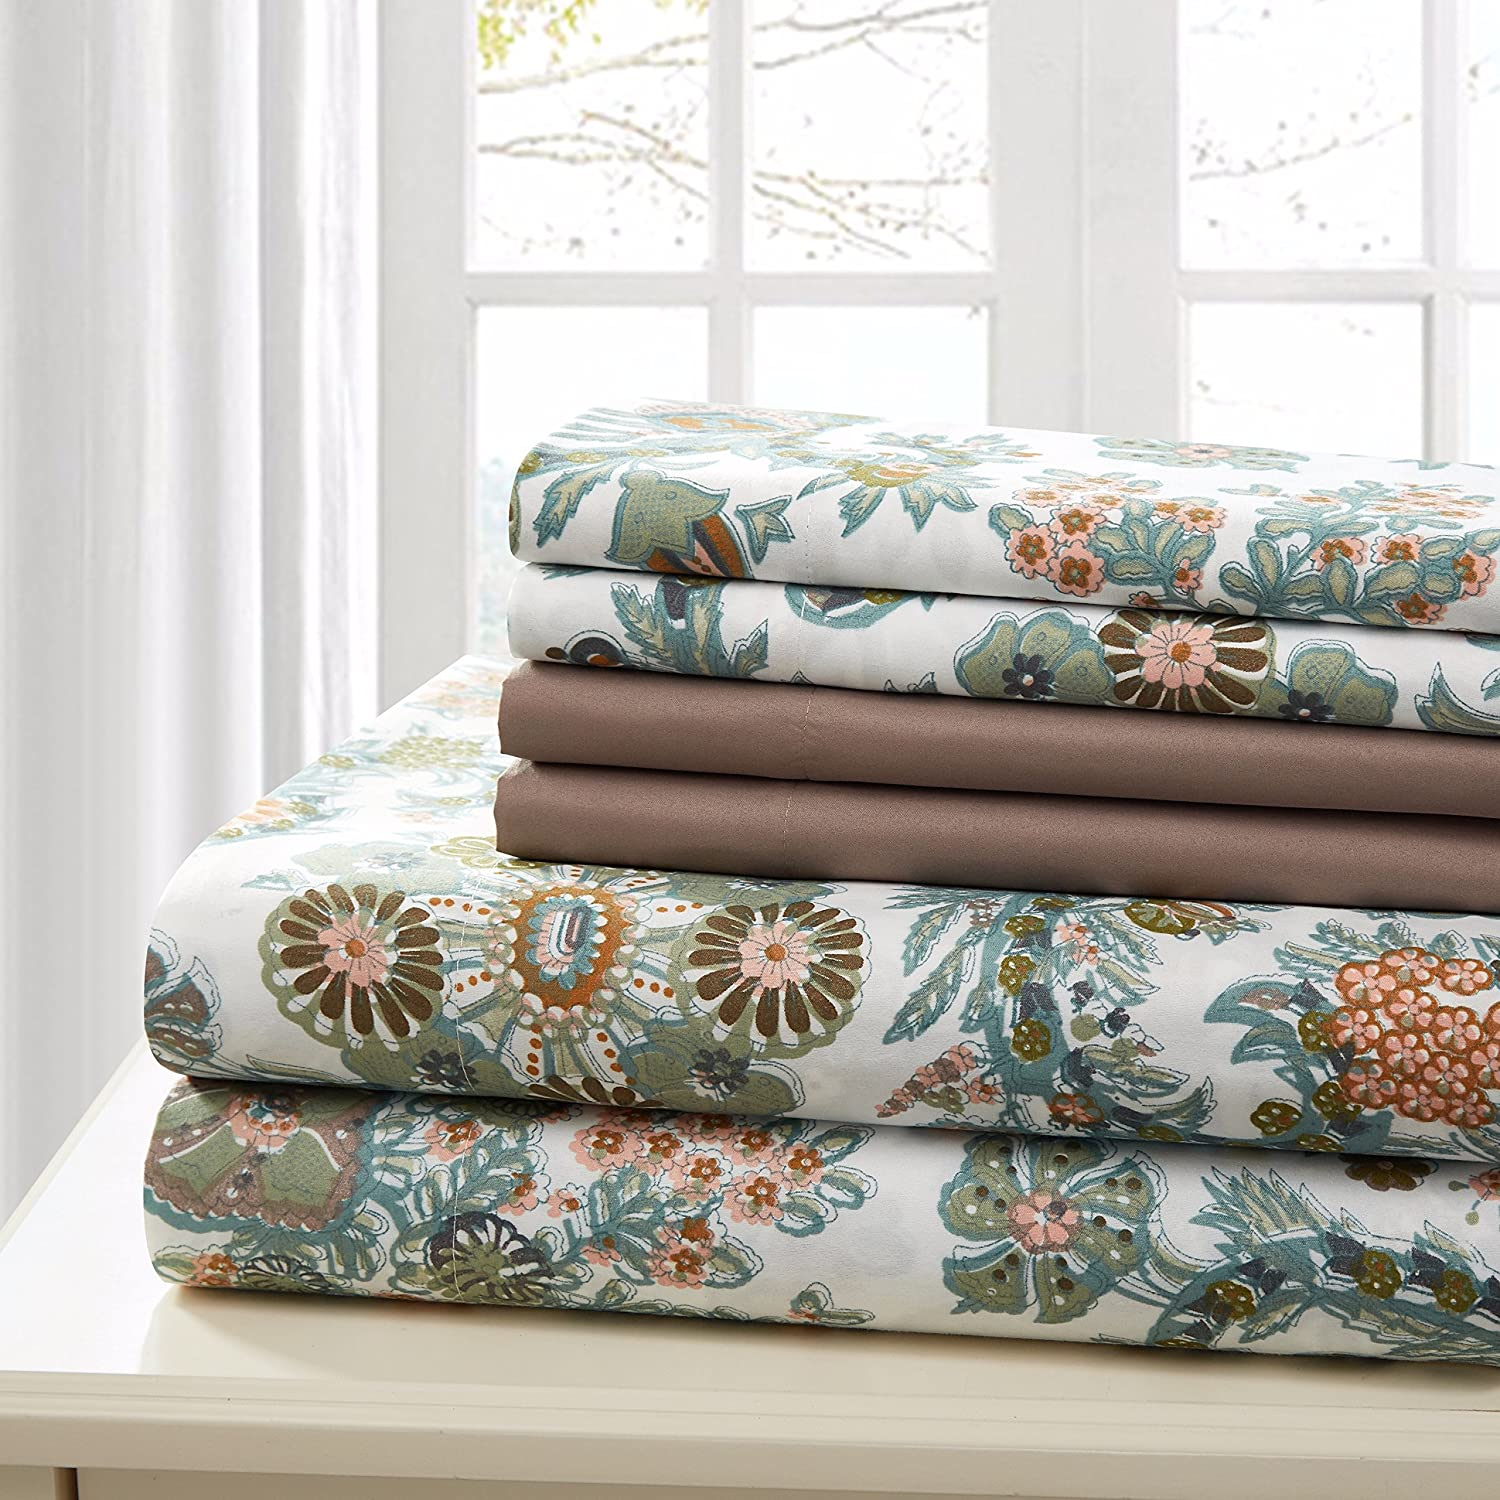 Traditional Home Sheet Set Cotton Percale 6 Piece Print Twin Full Queen King Soft (Brown Flower, Queen)